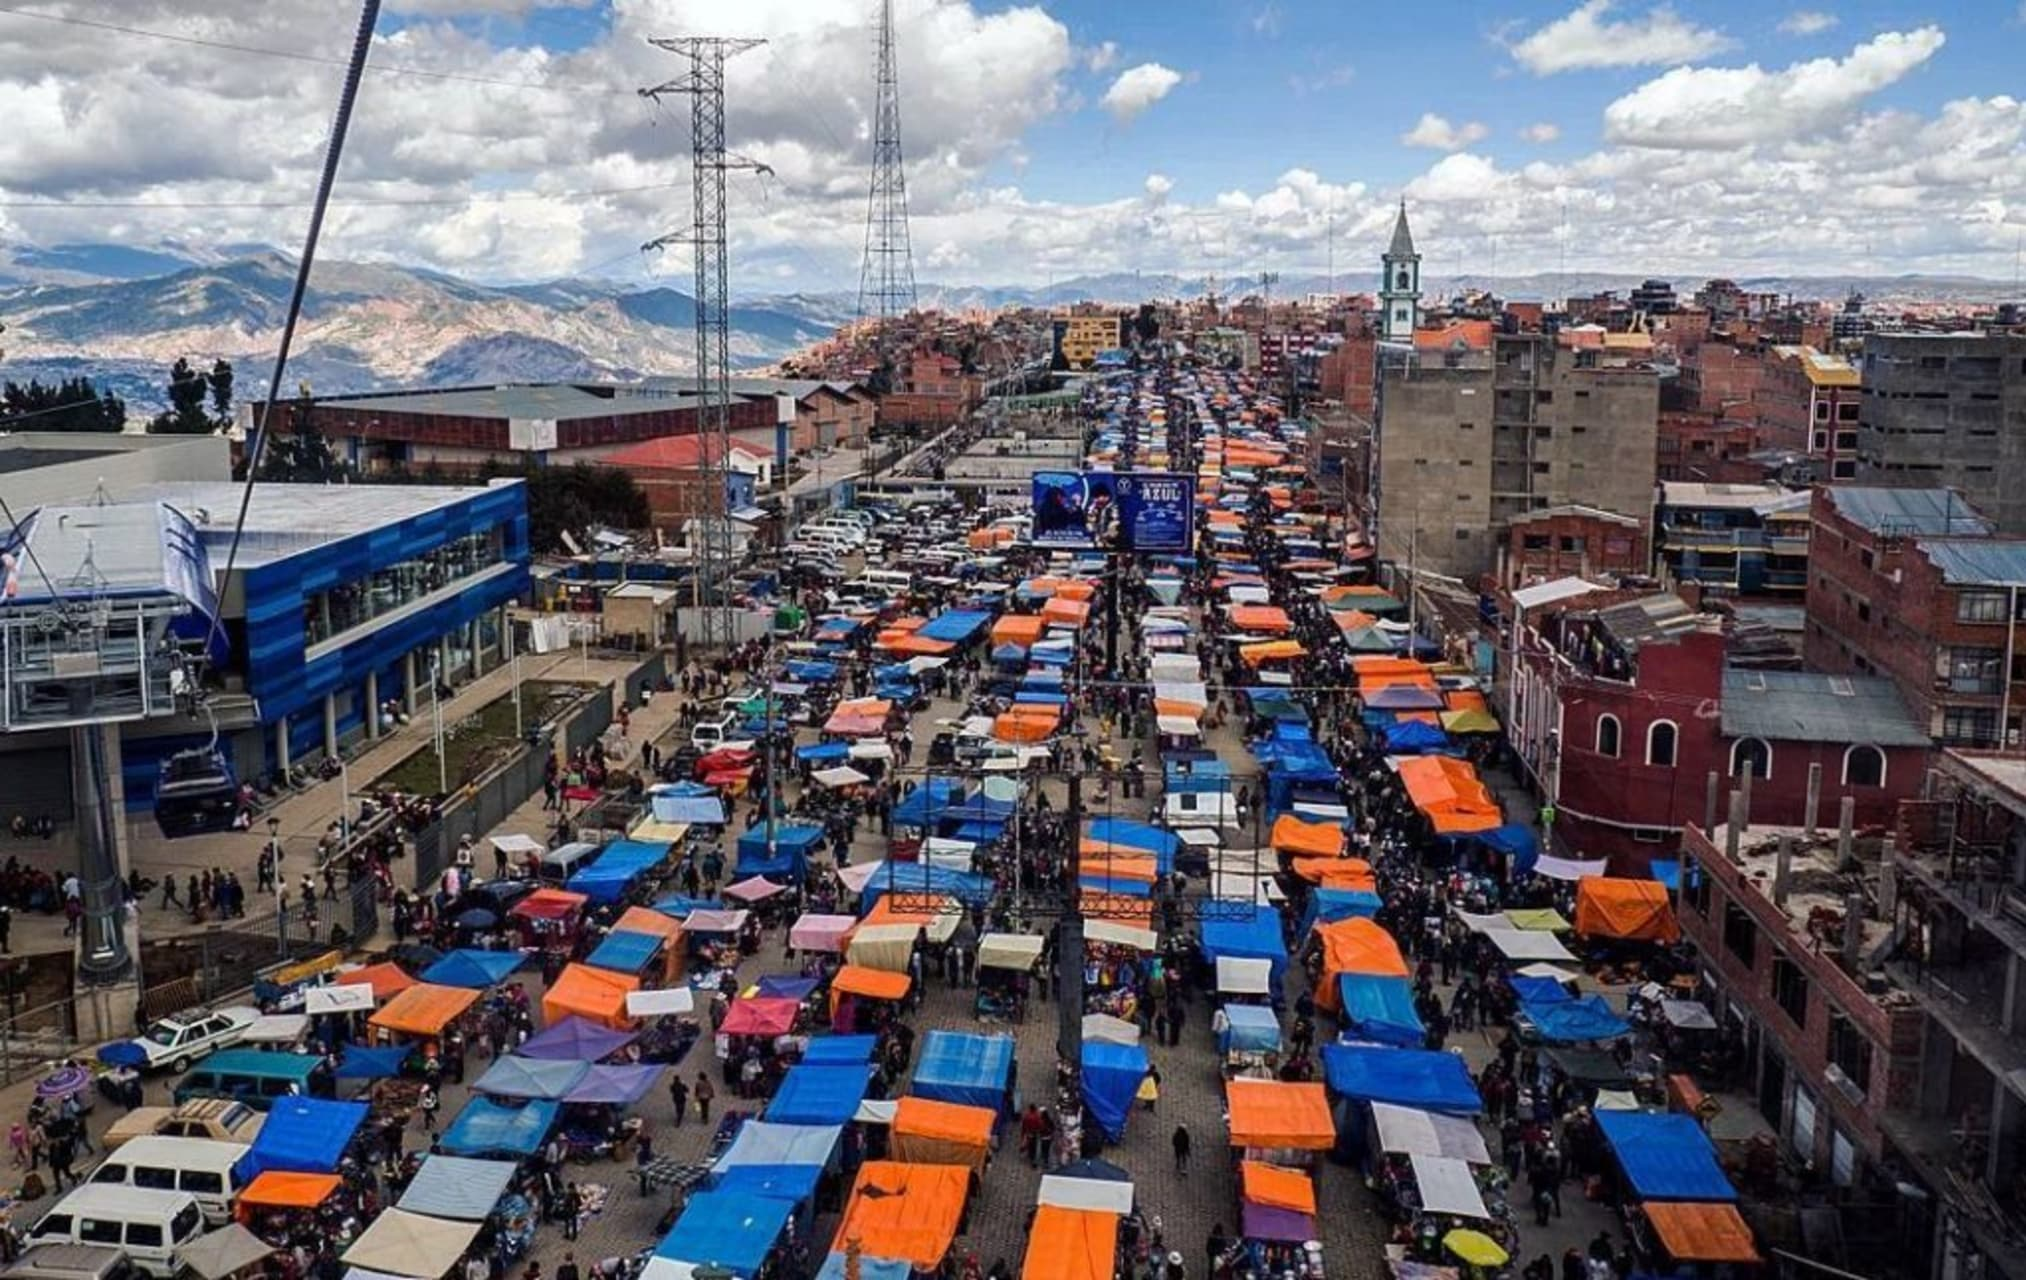 La Paz - Panoramic View of the Largest Flea Market in South America